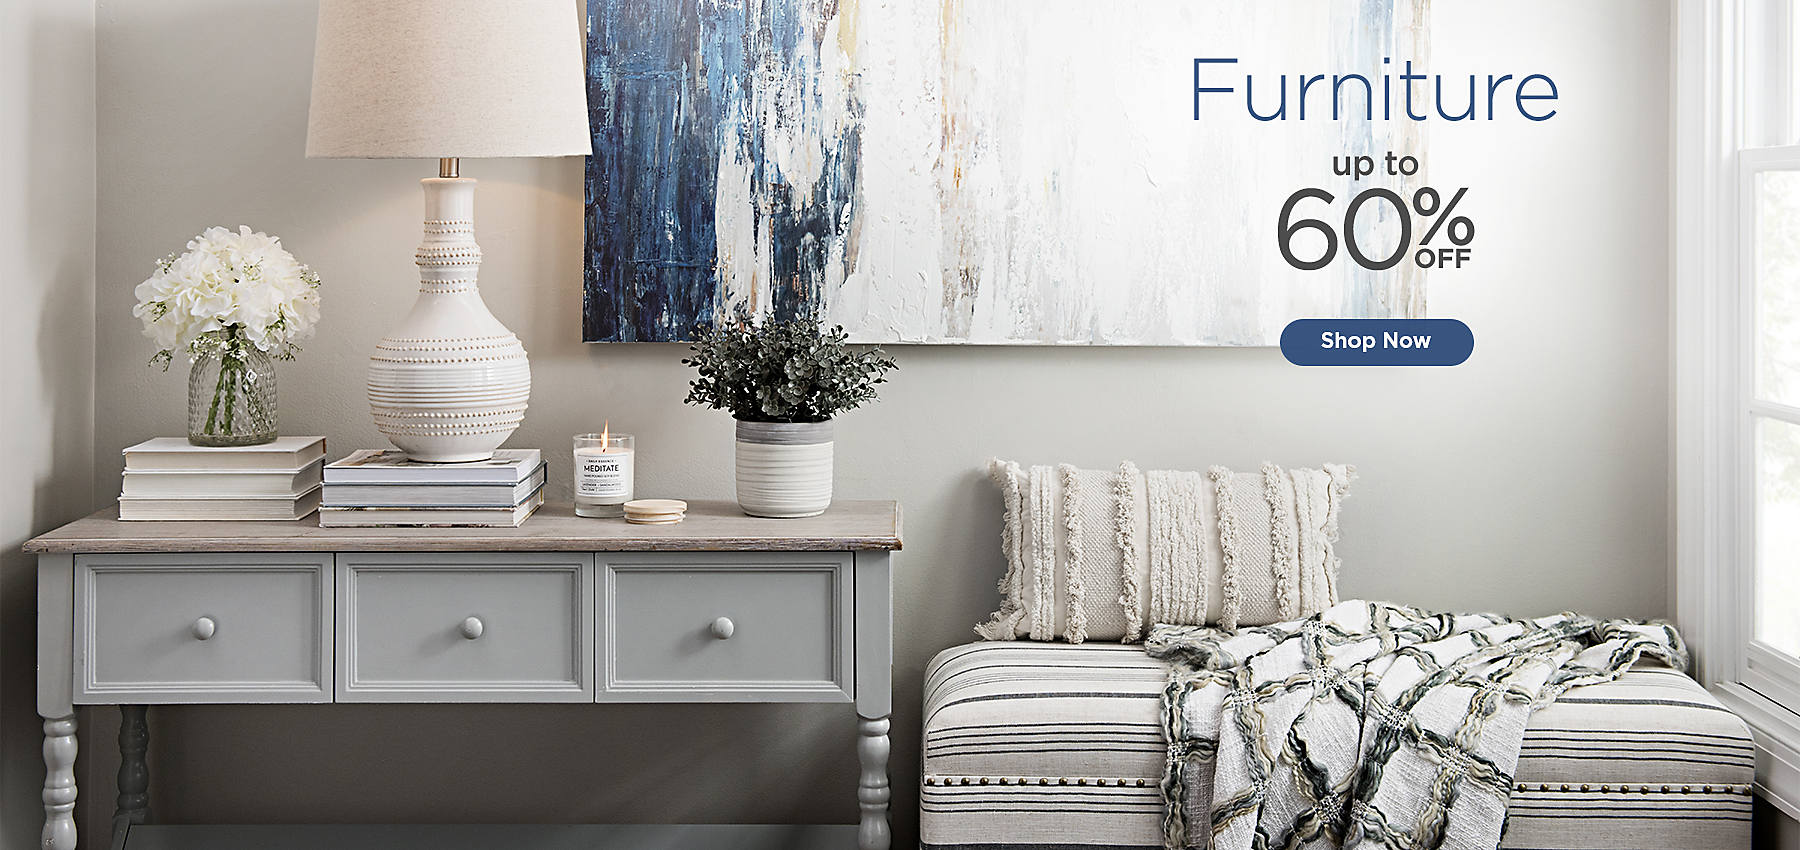 Furniture up to 60% off - Shop Now